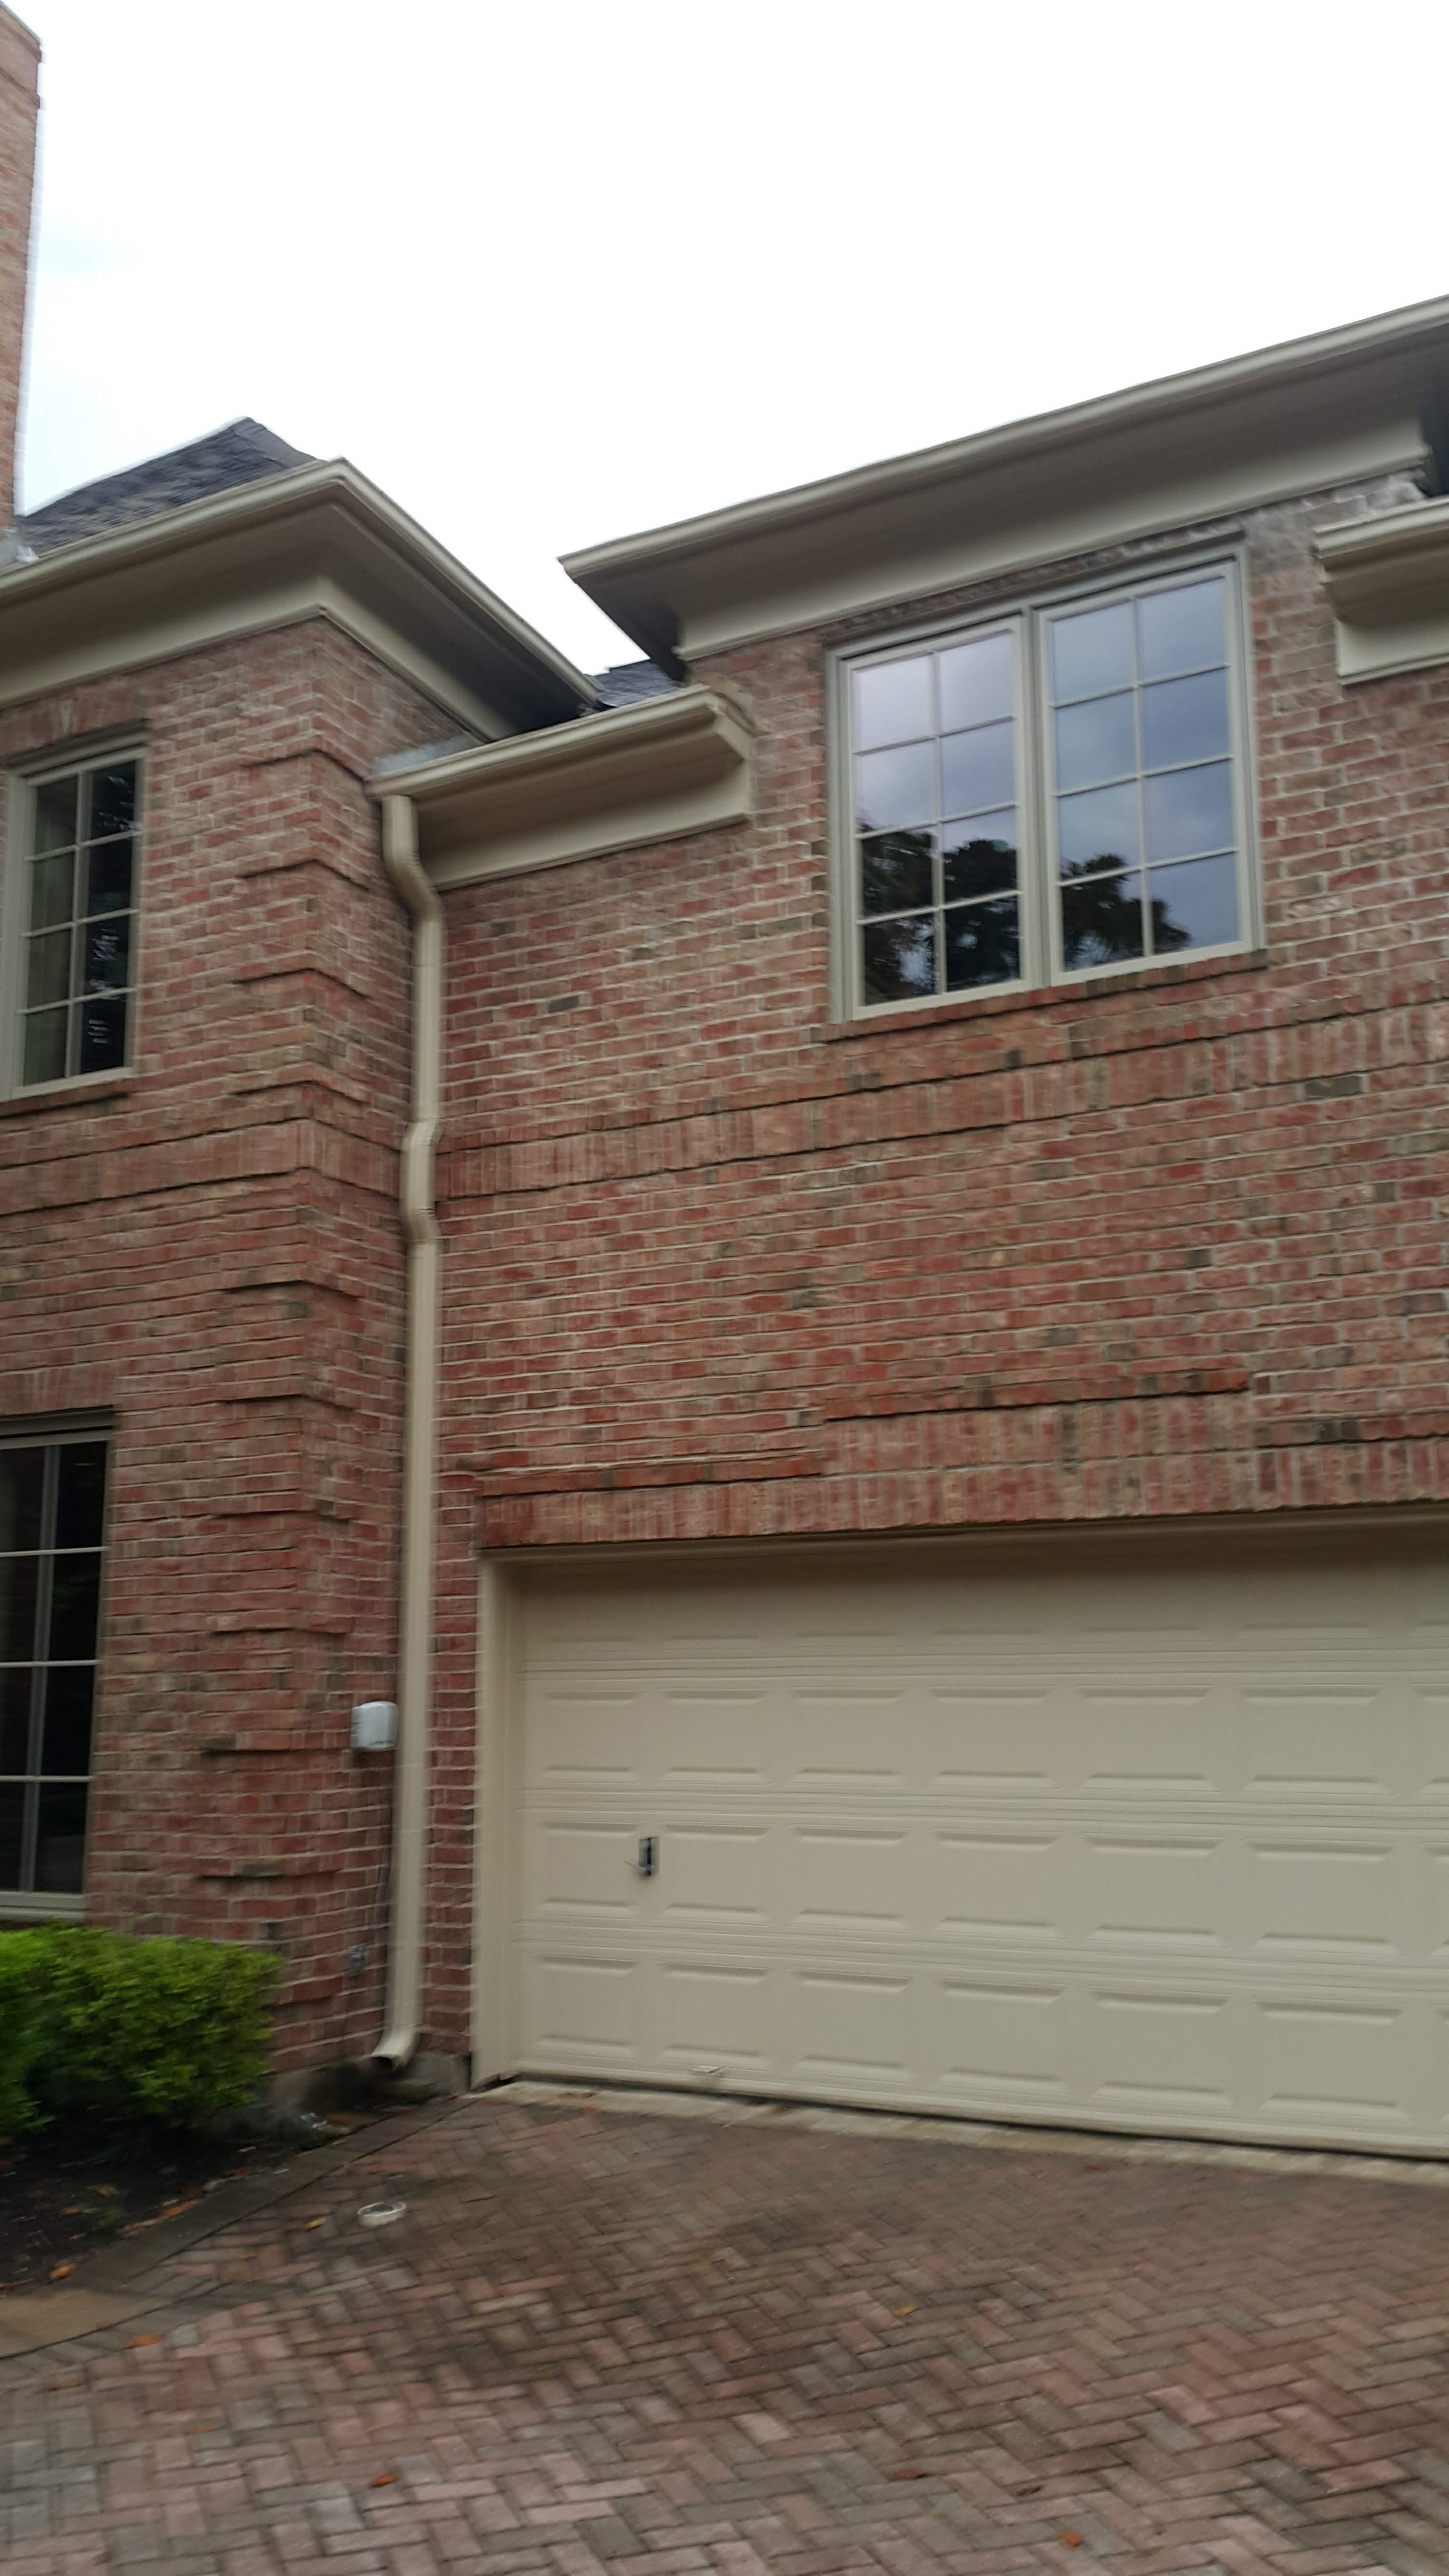 Best Window Cleaning Company in Stafford, Texas